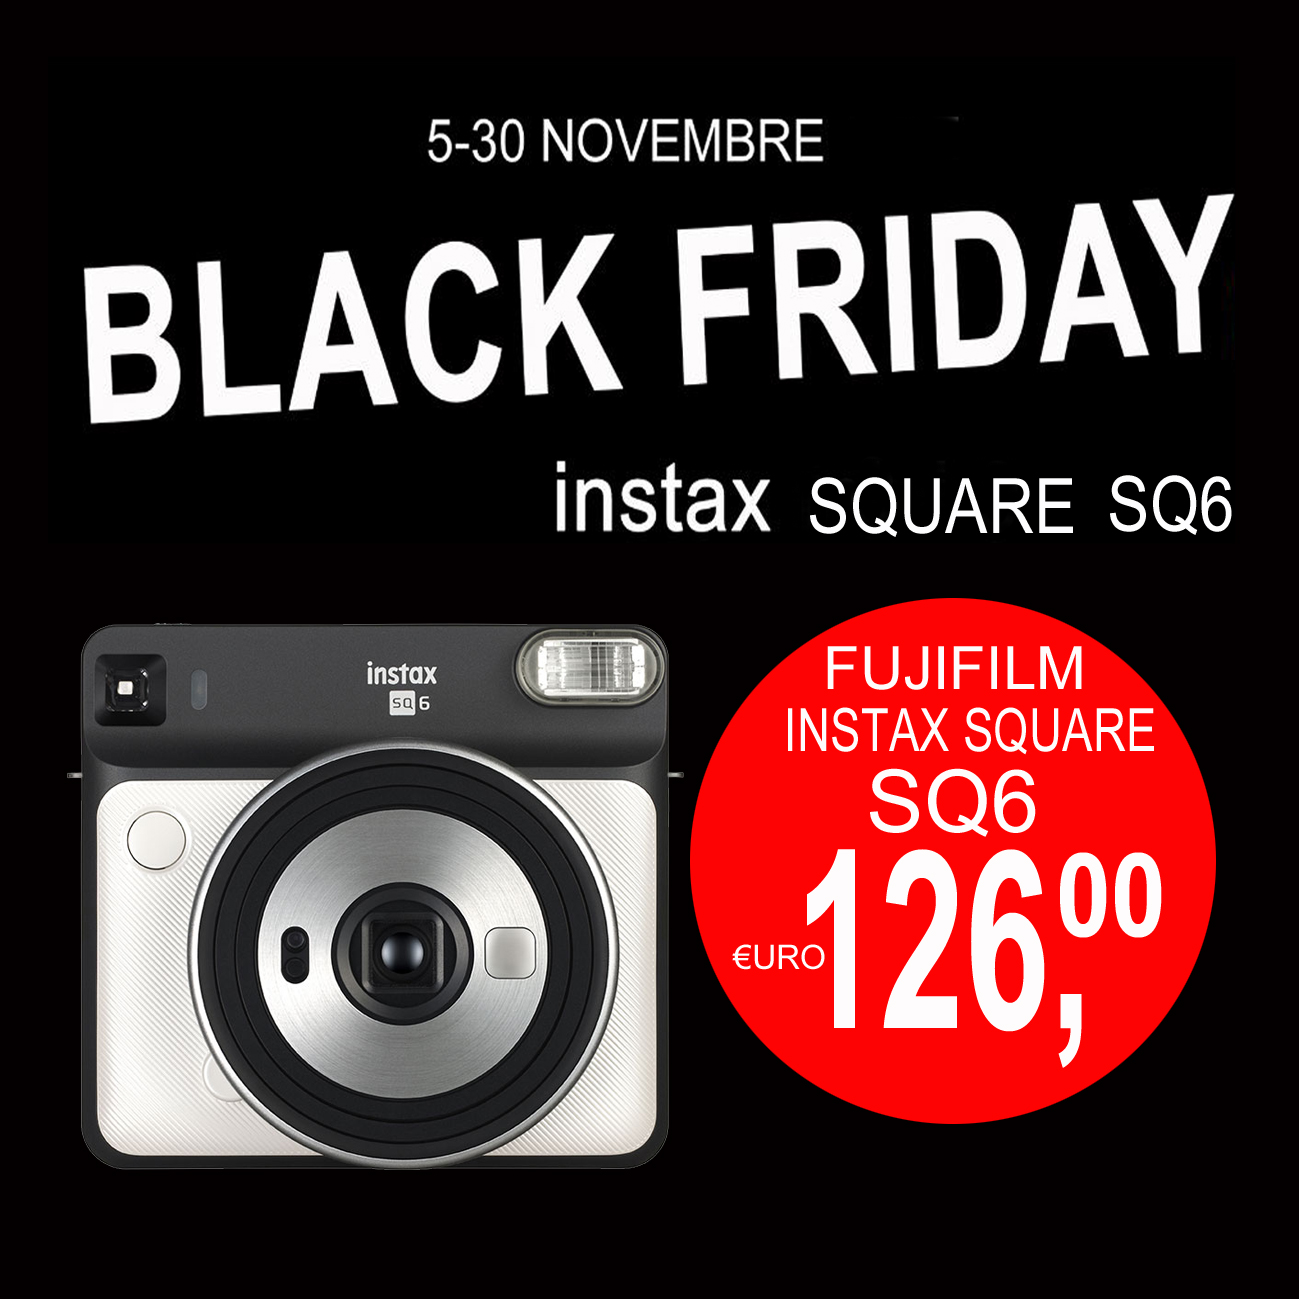 CALABRESE FOTOTTICA GROUP INFORMA: Black Friday 2019 Instax SQUARE SQ6″ a Bologna